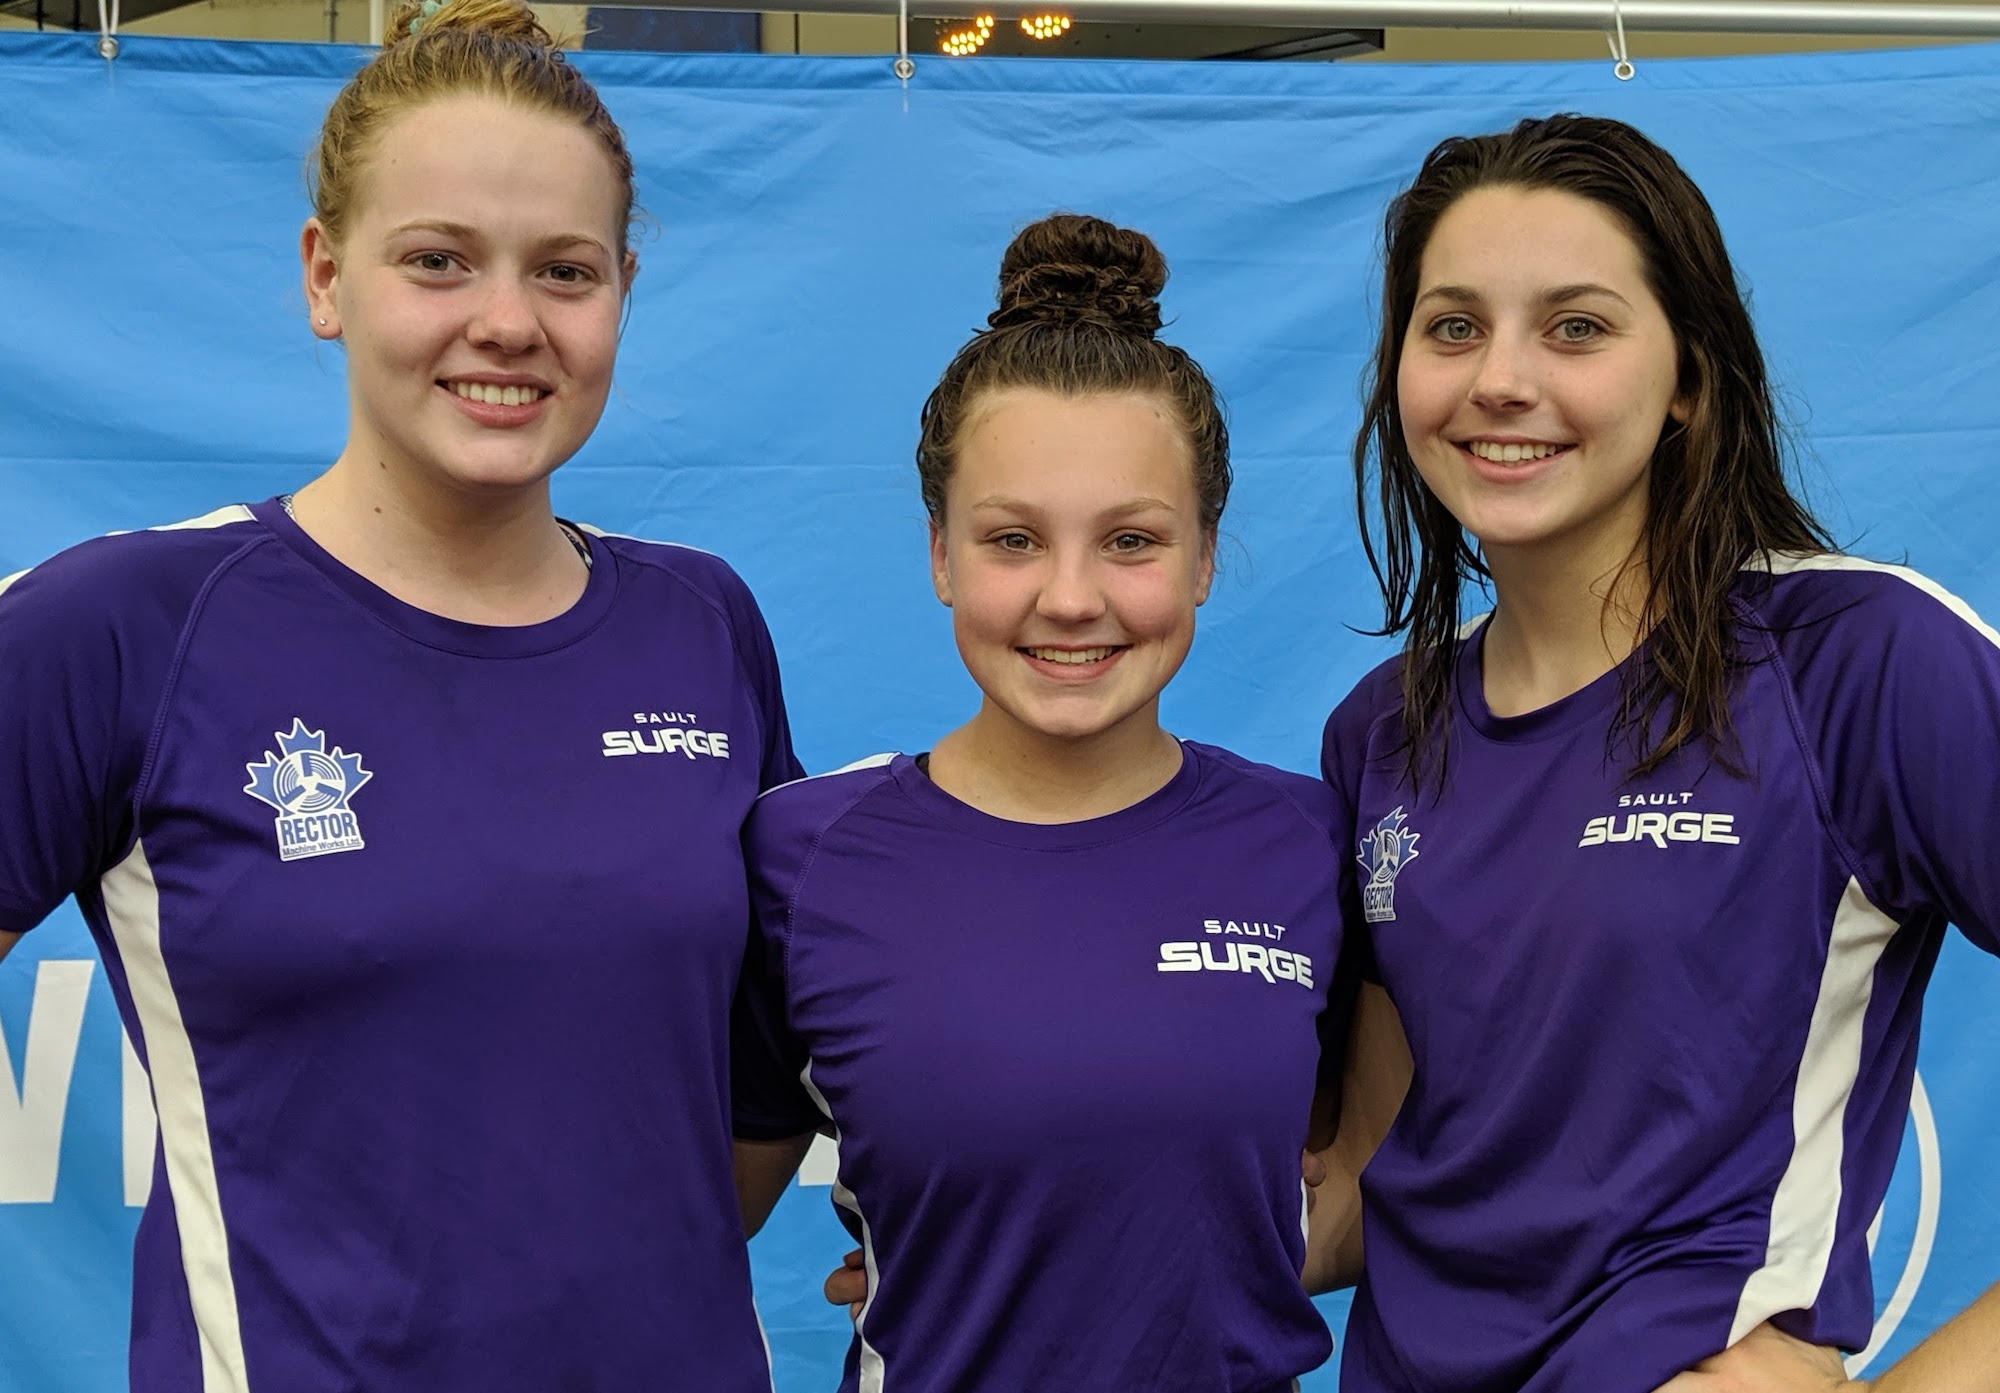 Sault Surge makes a big splash at Etobicoke competition - SooToday